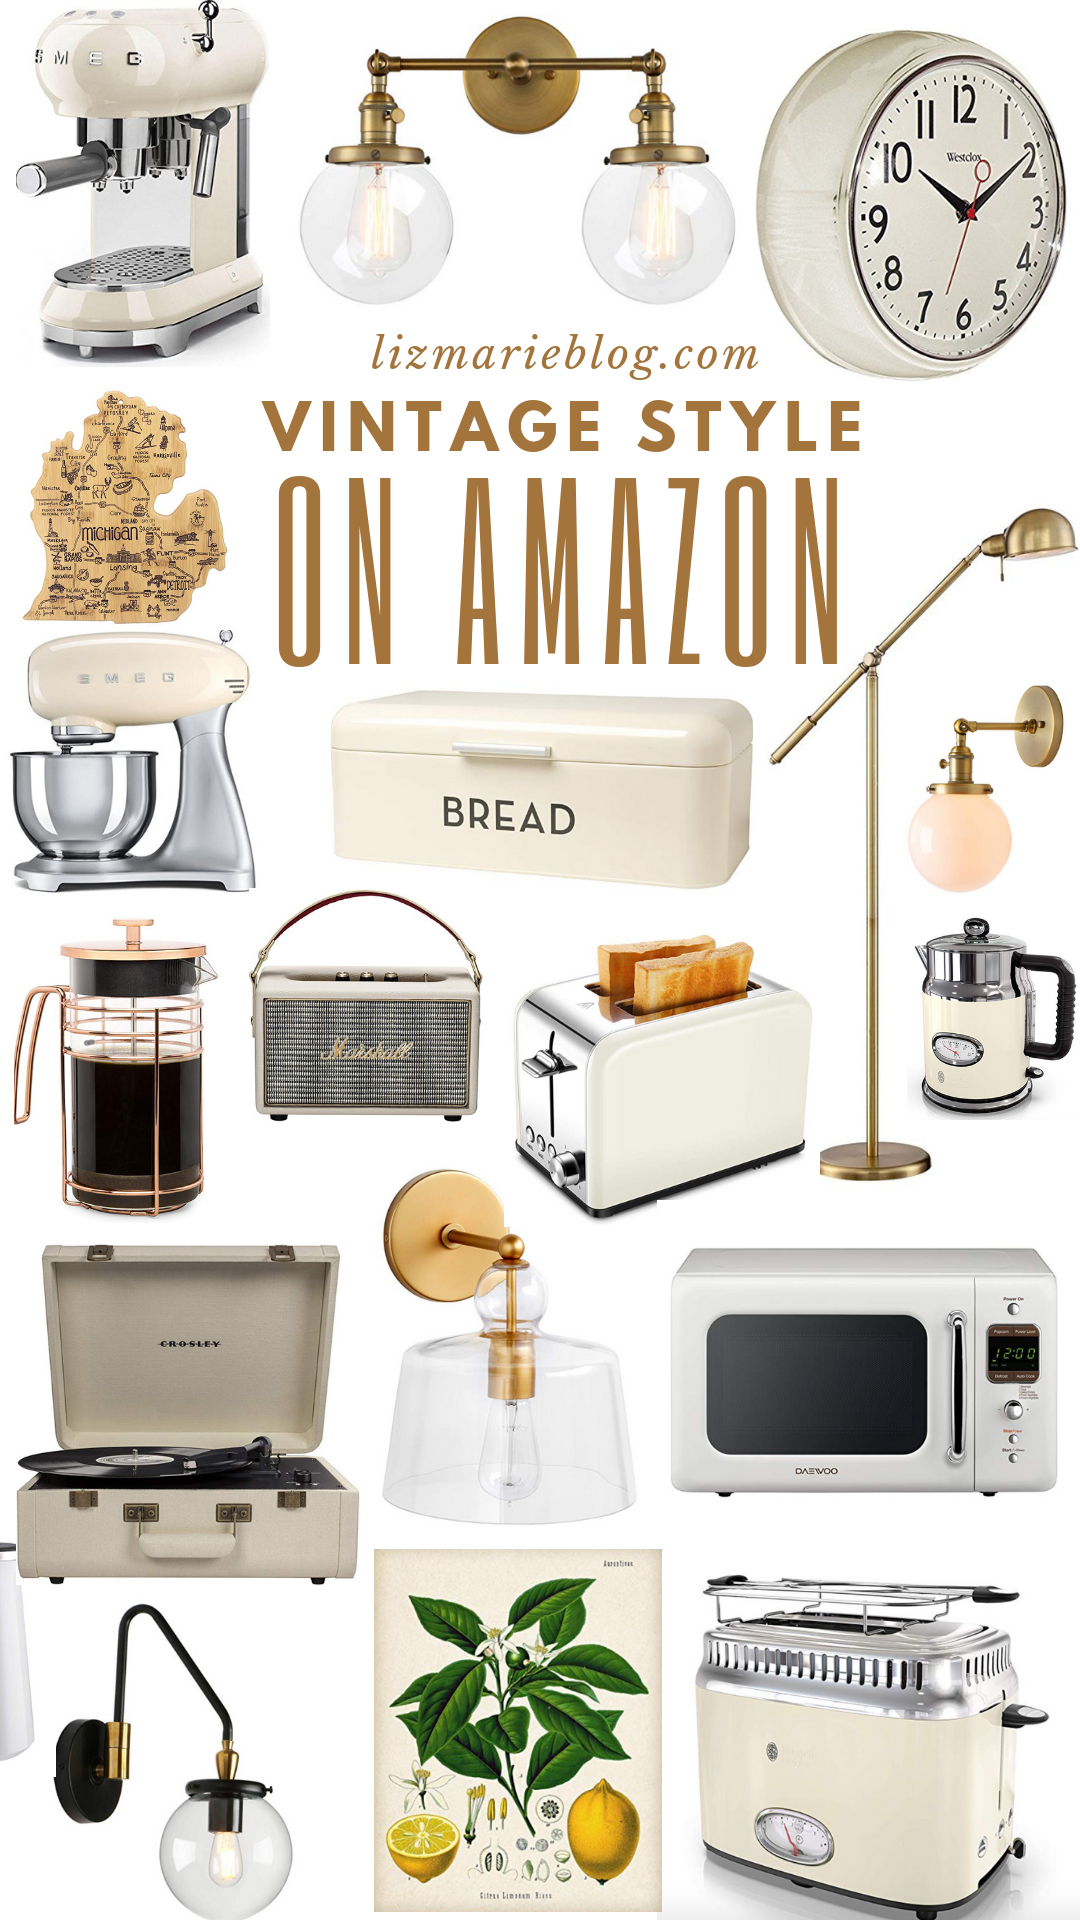 Vintage Inspired Kitchen Finds on Amazon  Amazon home decor